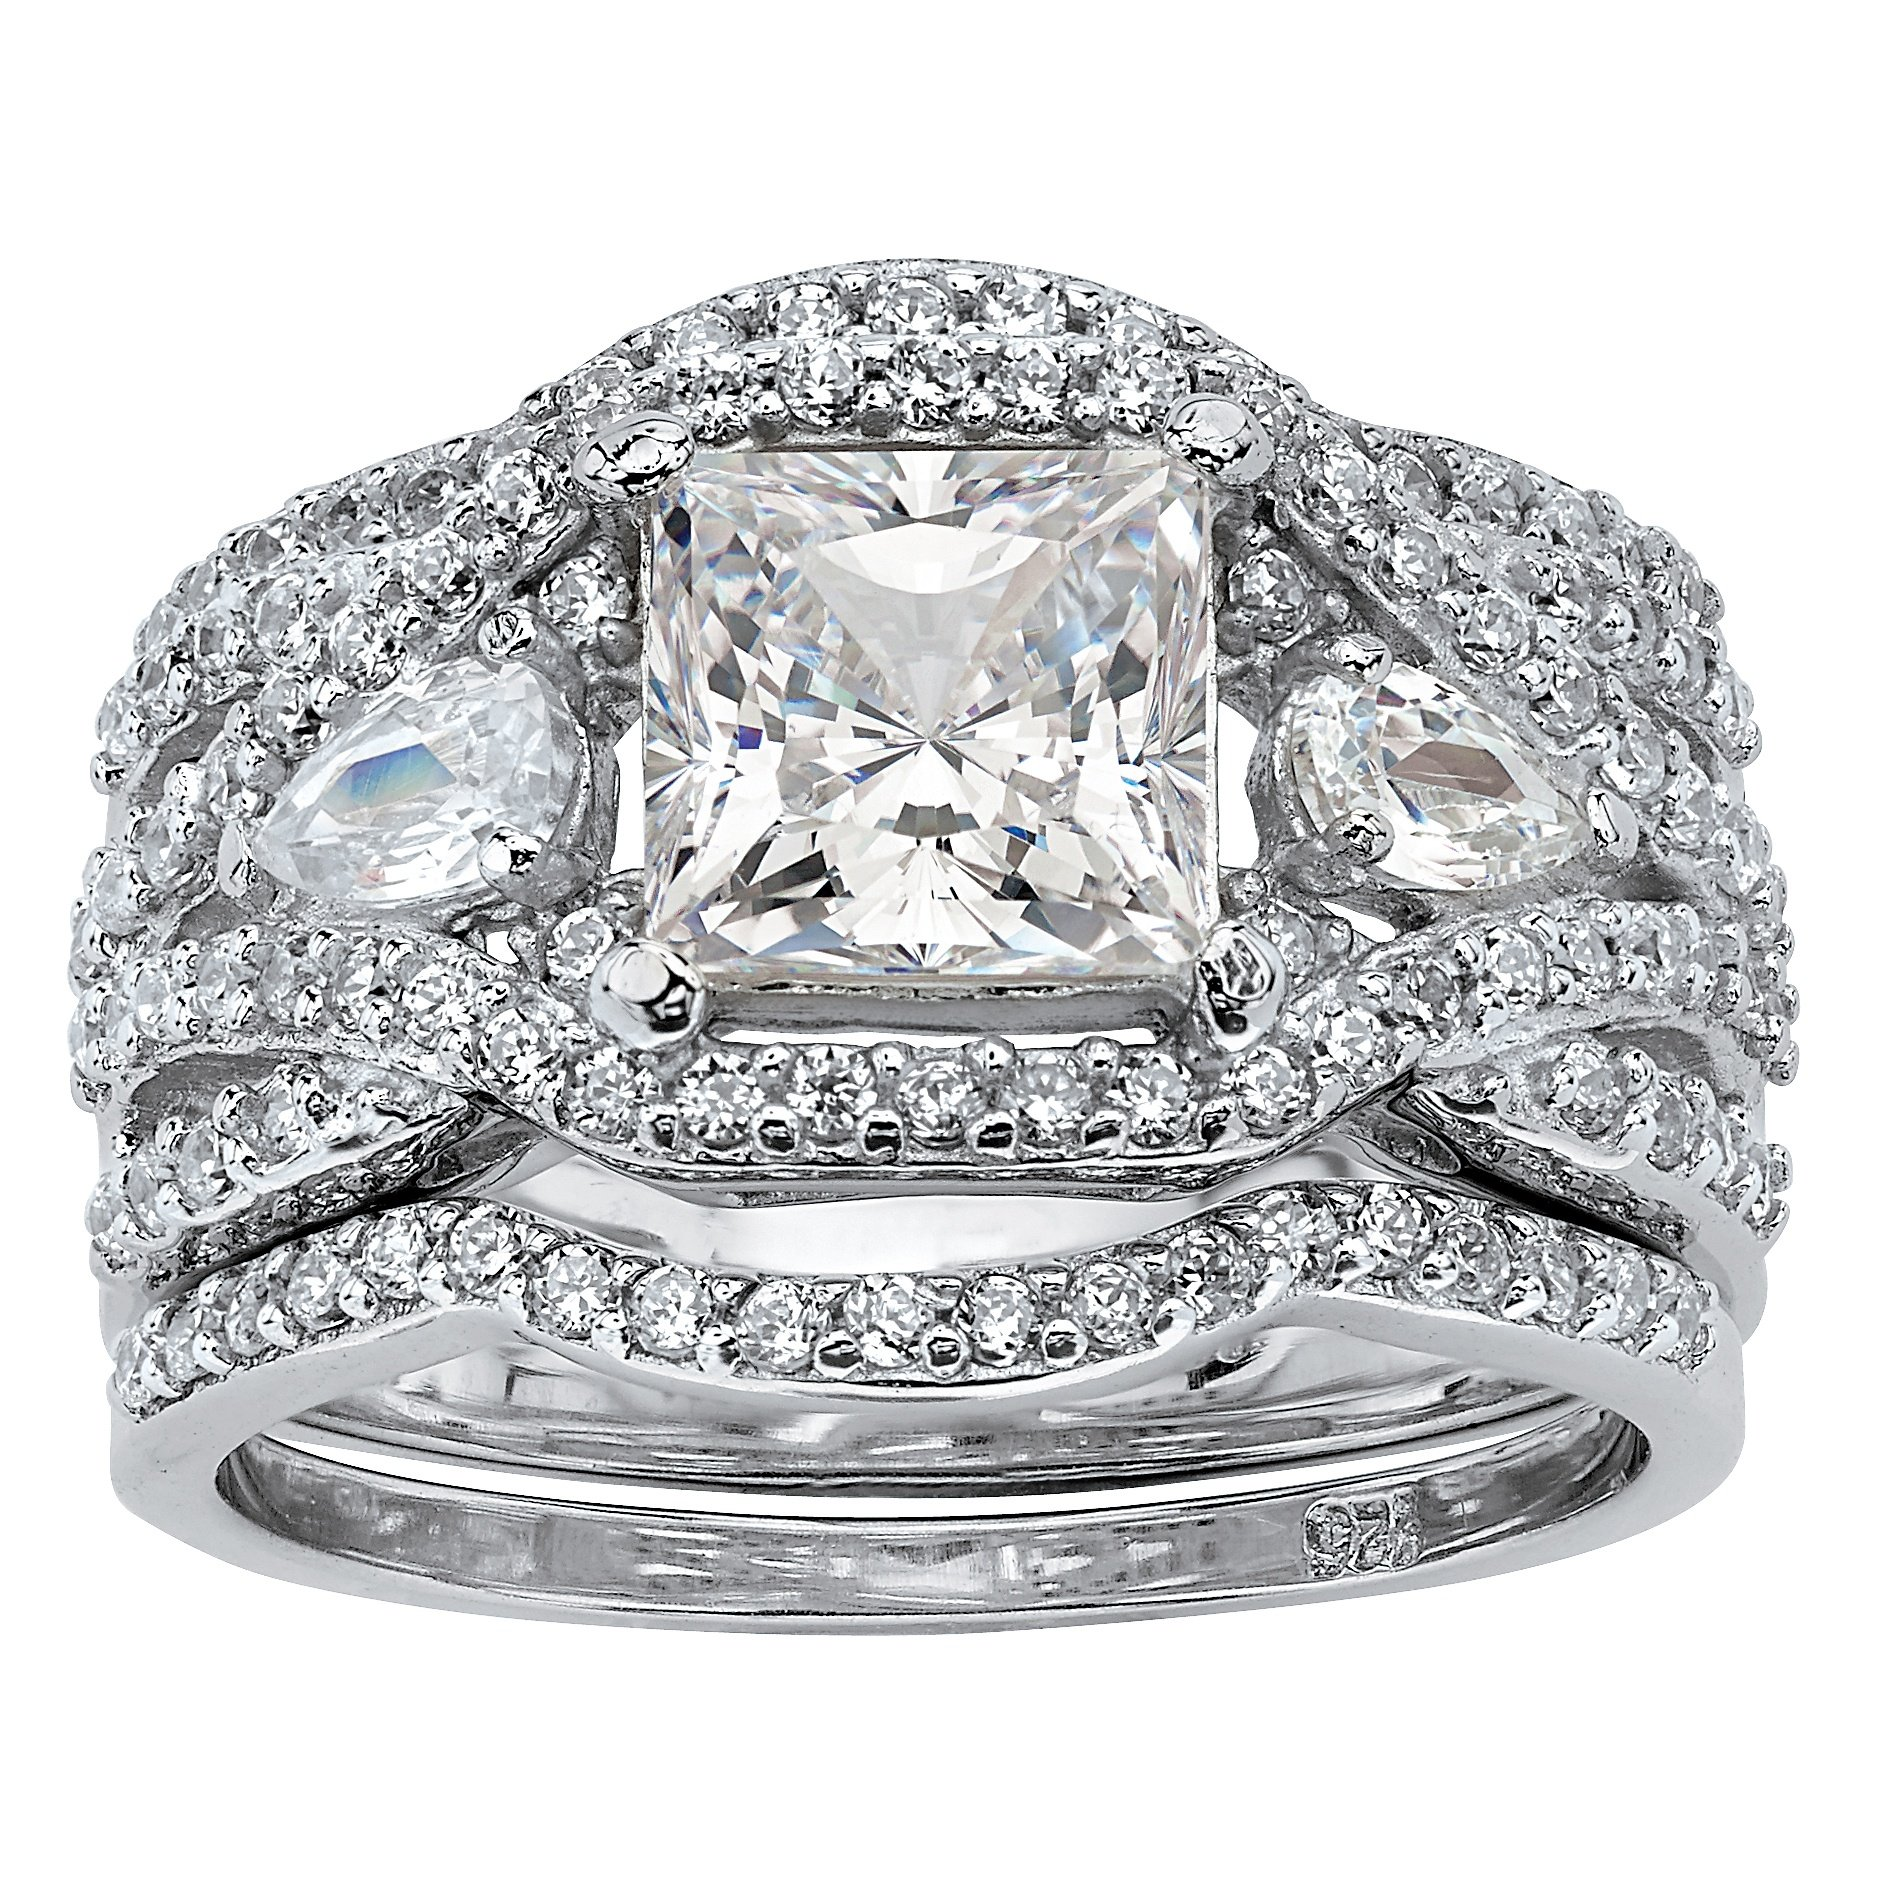 Princess-Cut White Cubic Zirconia Platinum over .925 Silver 3-Piece Highway Bridal Ring Set